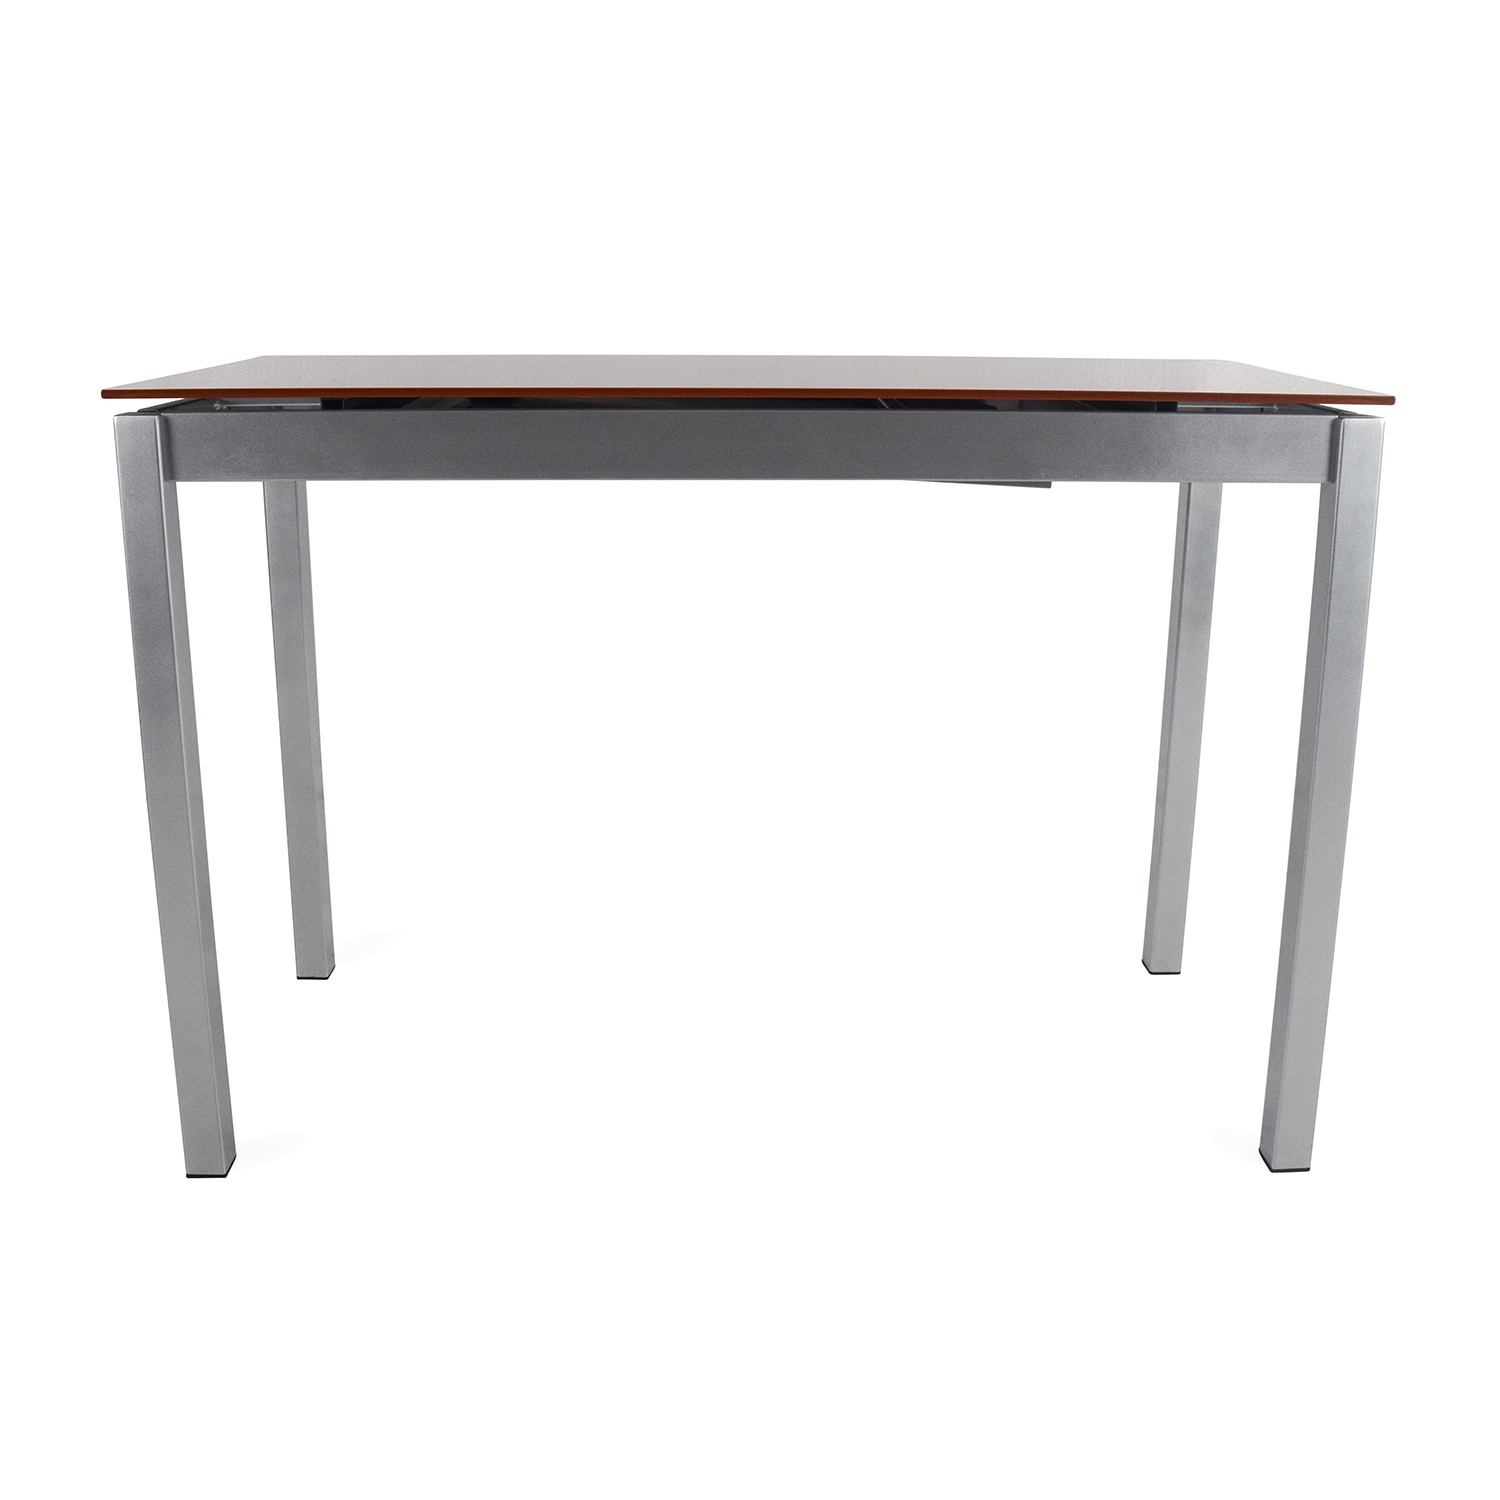 Unknown Brand Glass Top Extendable Metal Table coupon